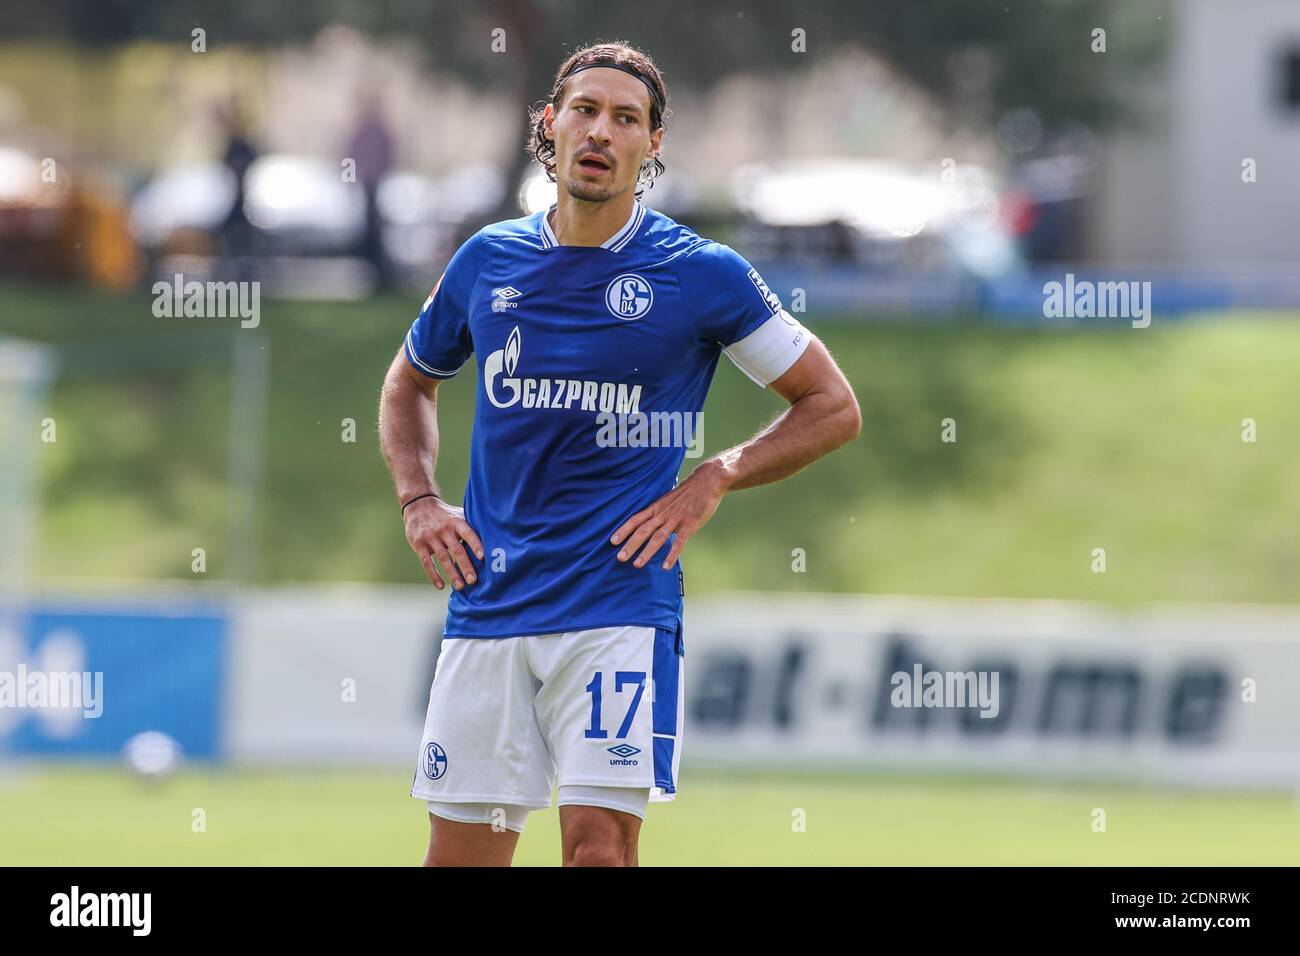 Stambouli High Resolution Stock Photography and Images - Alamy